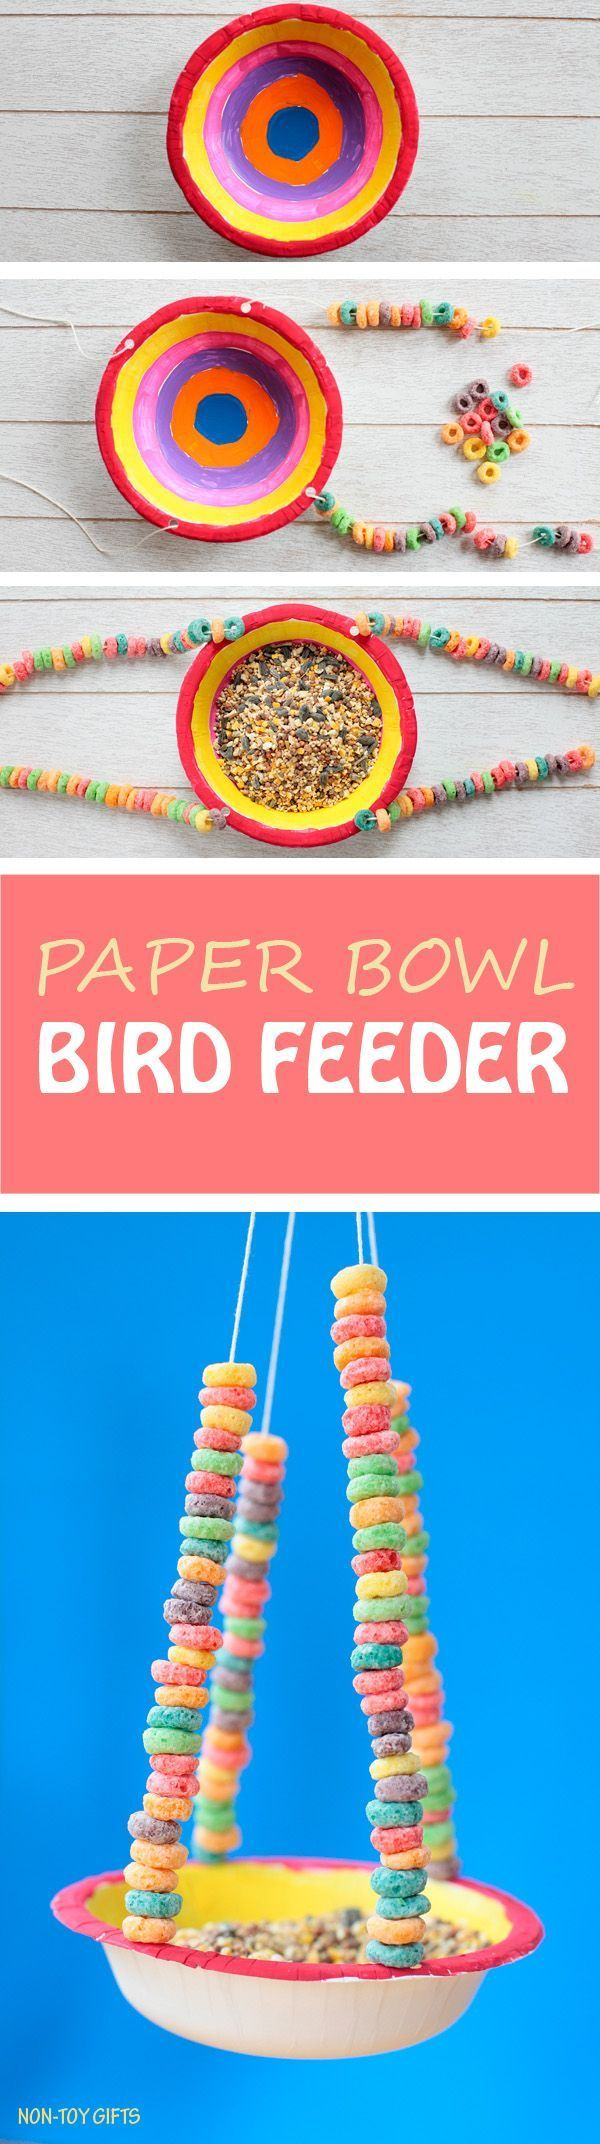 Avian Bowl Study Questions Questions and Study Guide ...